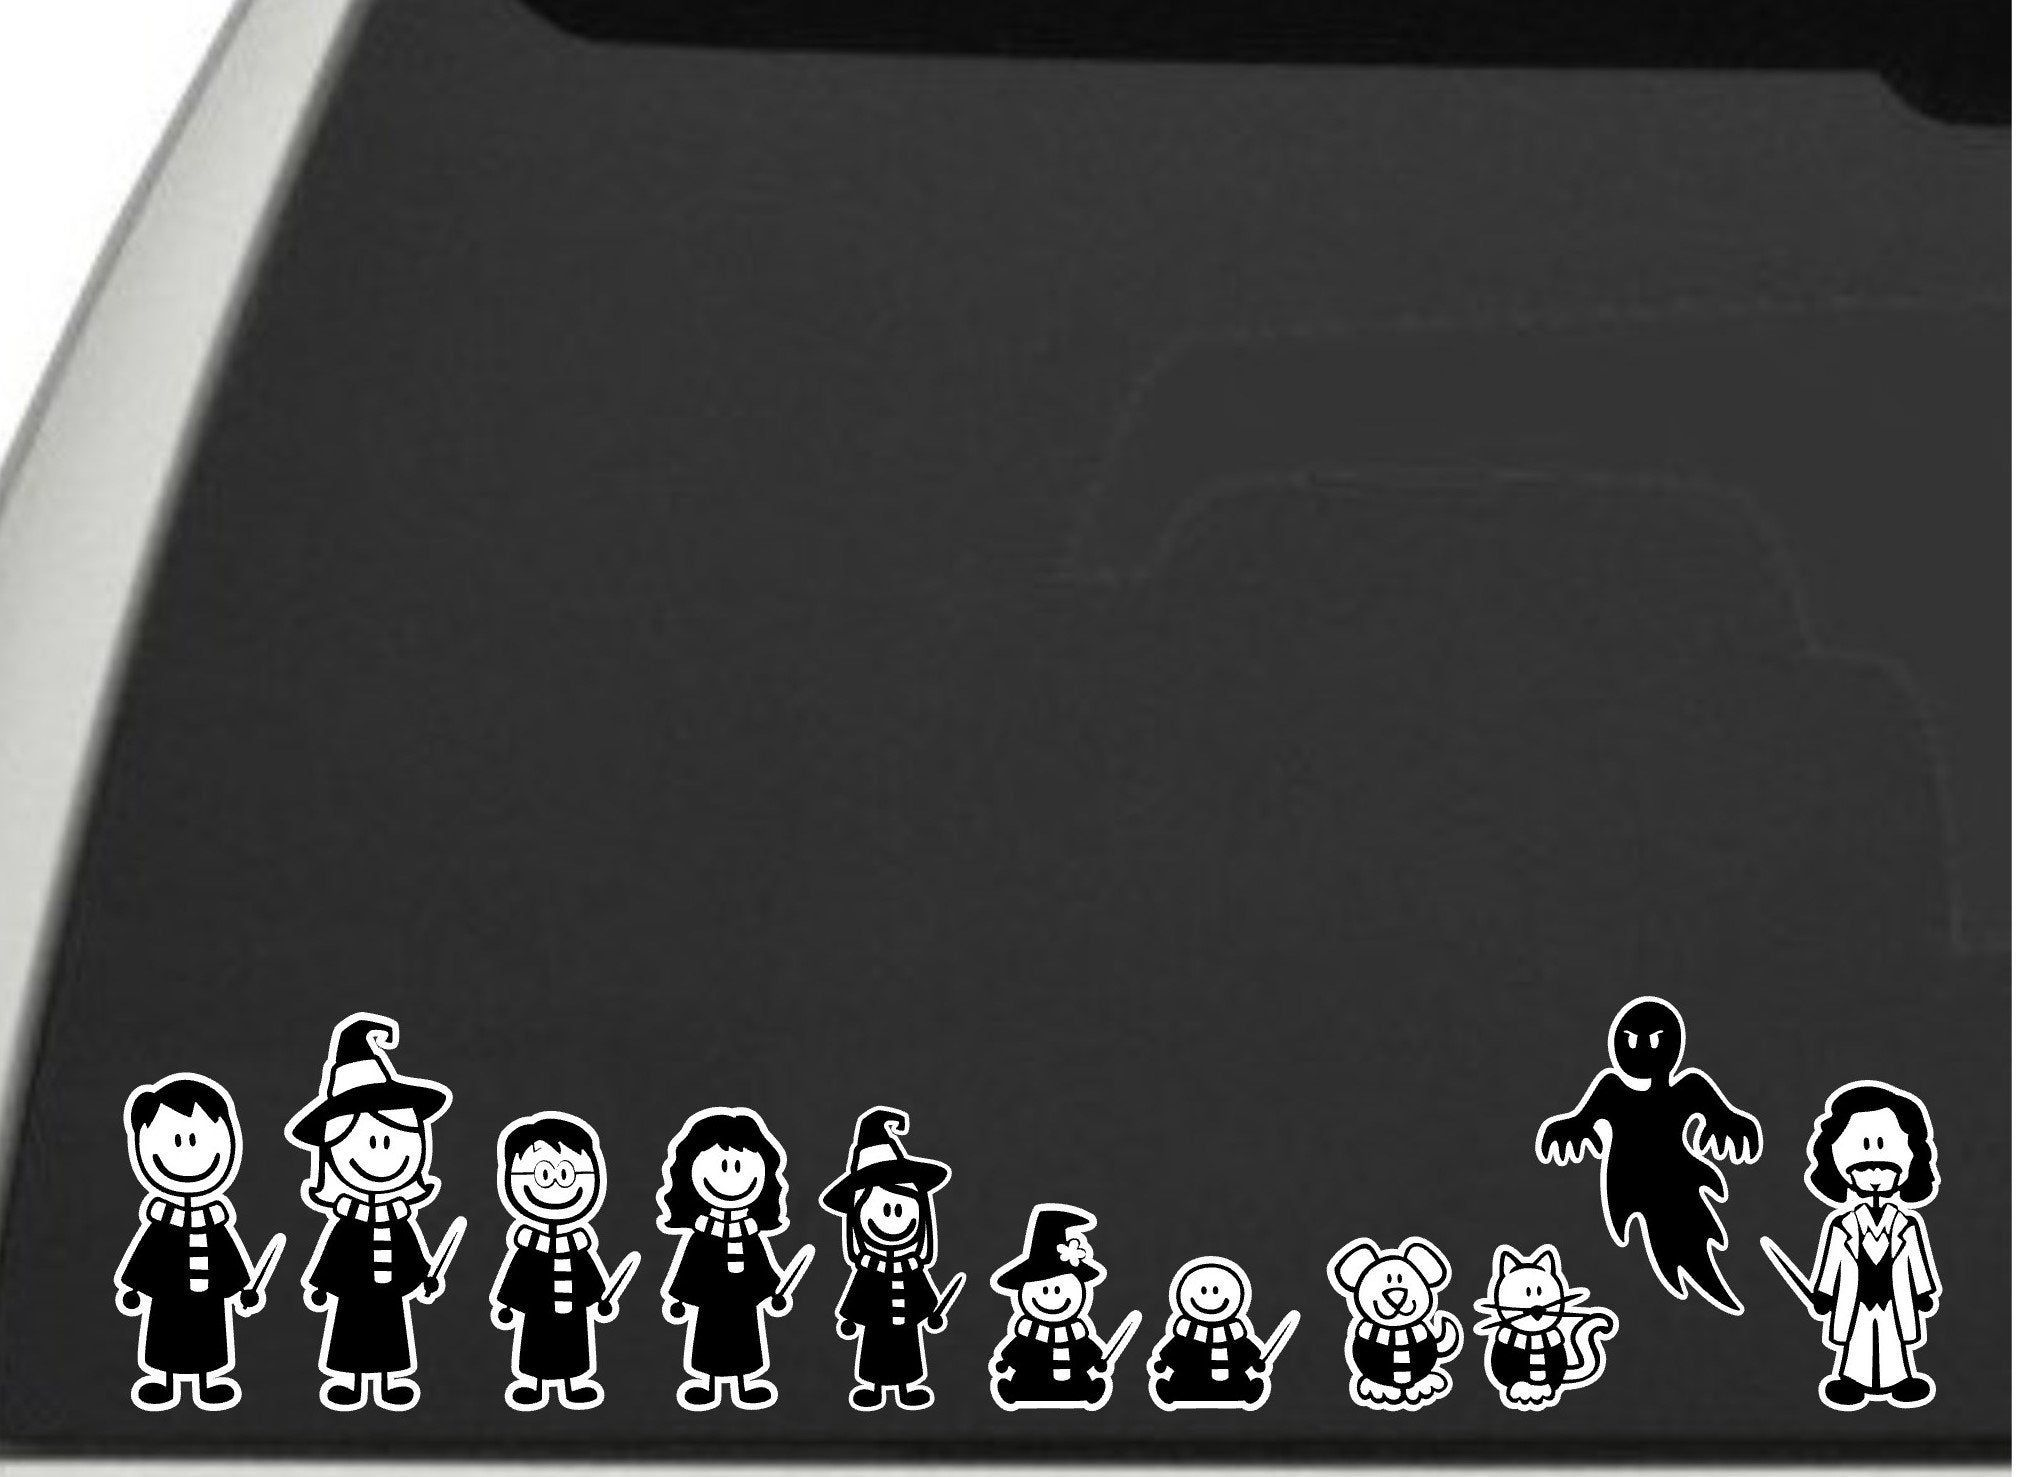 Wizard Stick Figure Family Decal For Car Window Decal Vinyl Etsy Family Car Decals Family Decals Stick Figure Family [ 1477 x 2032 Pixel ]